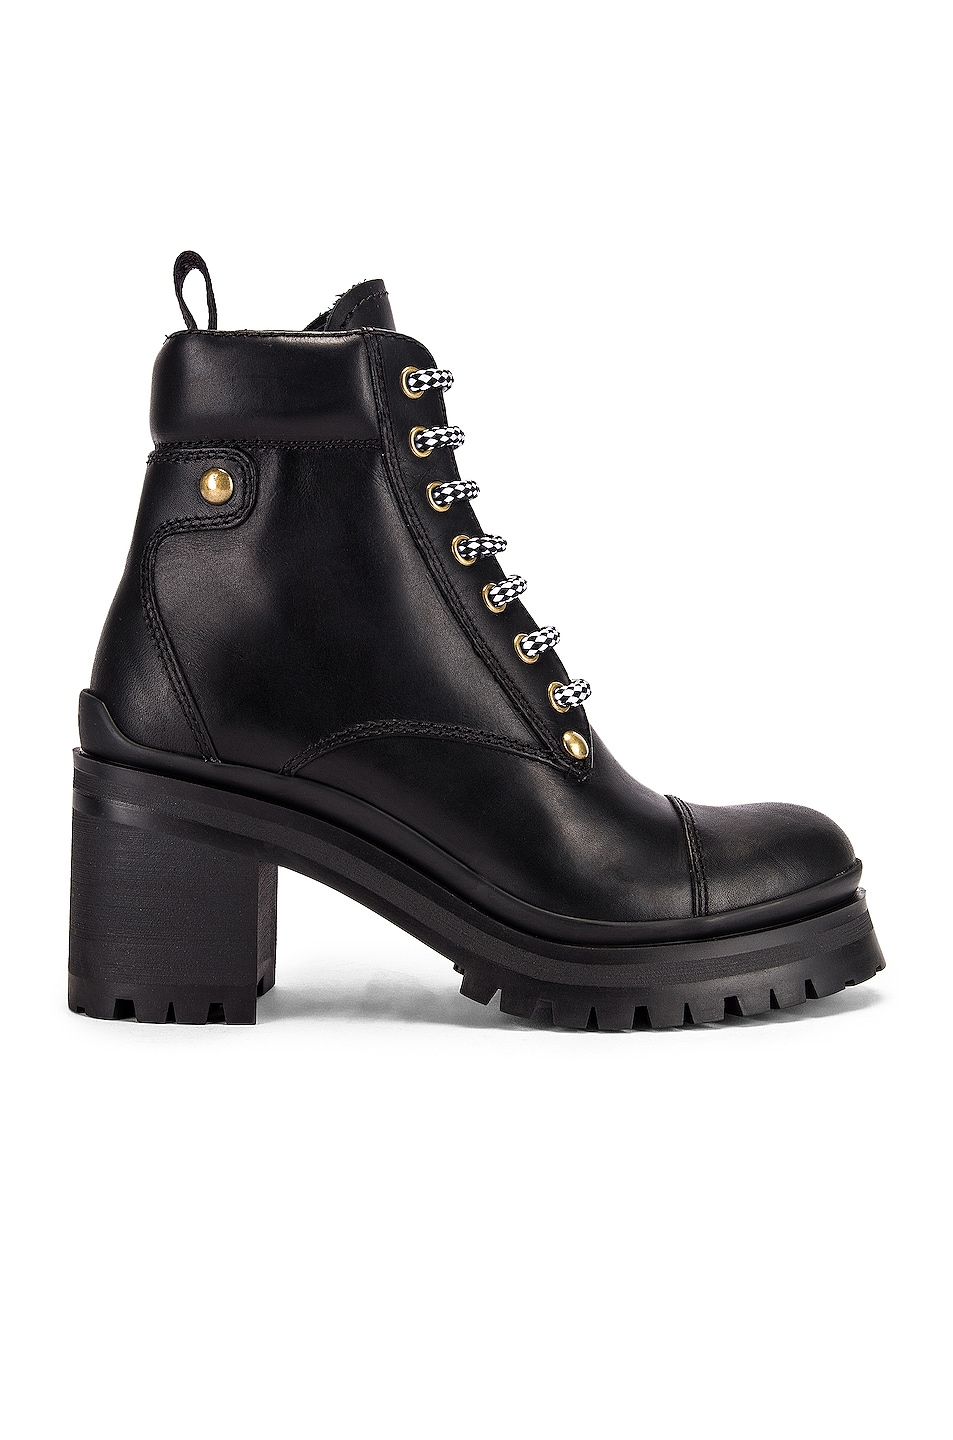 Image 1 of Miu Miu Lace Up Leather Ankle Boots in Black